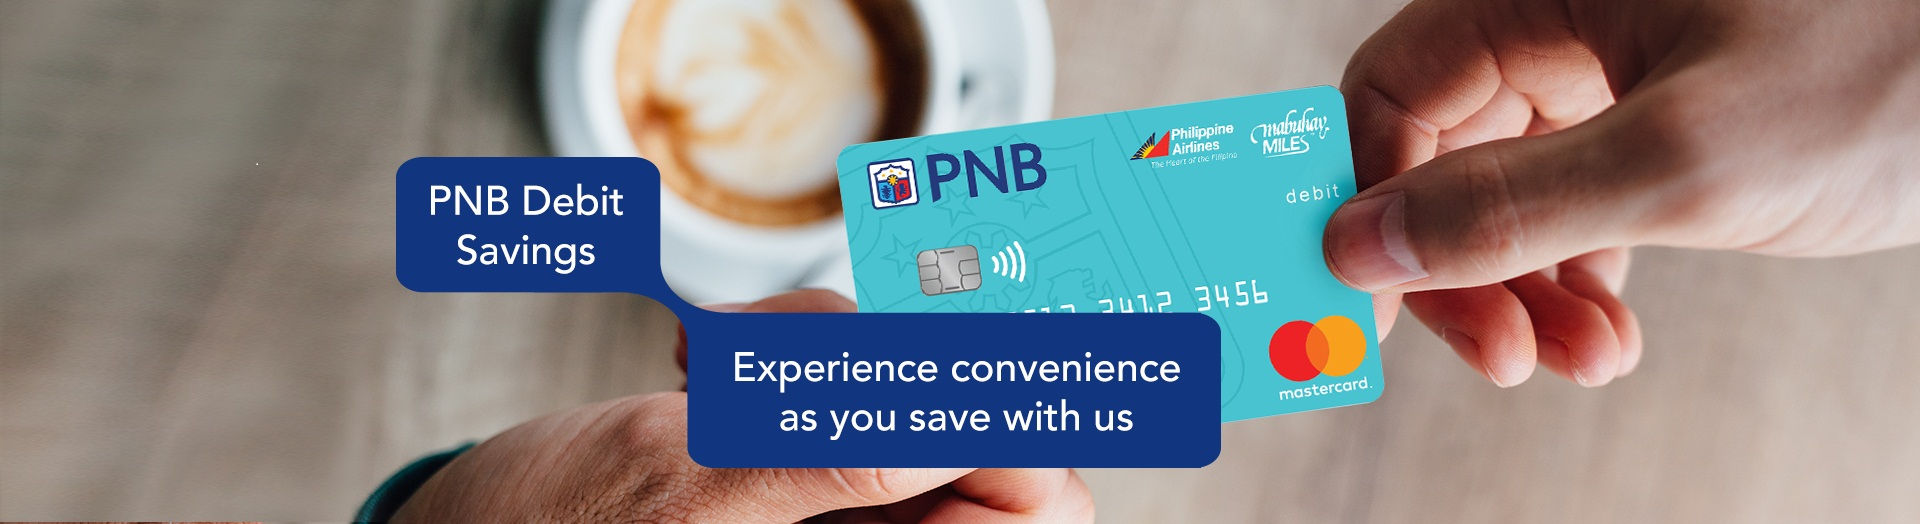 PNB PAL Mabuhay Miles Debit Mastercard Savings